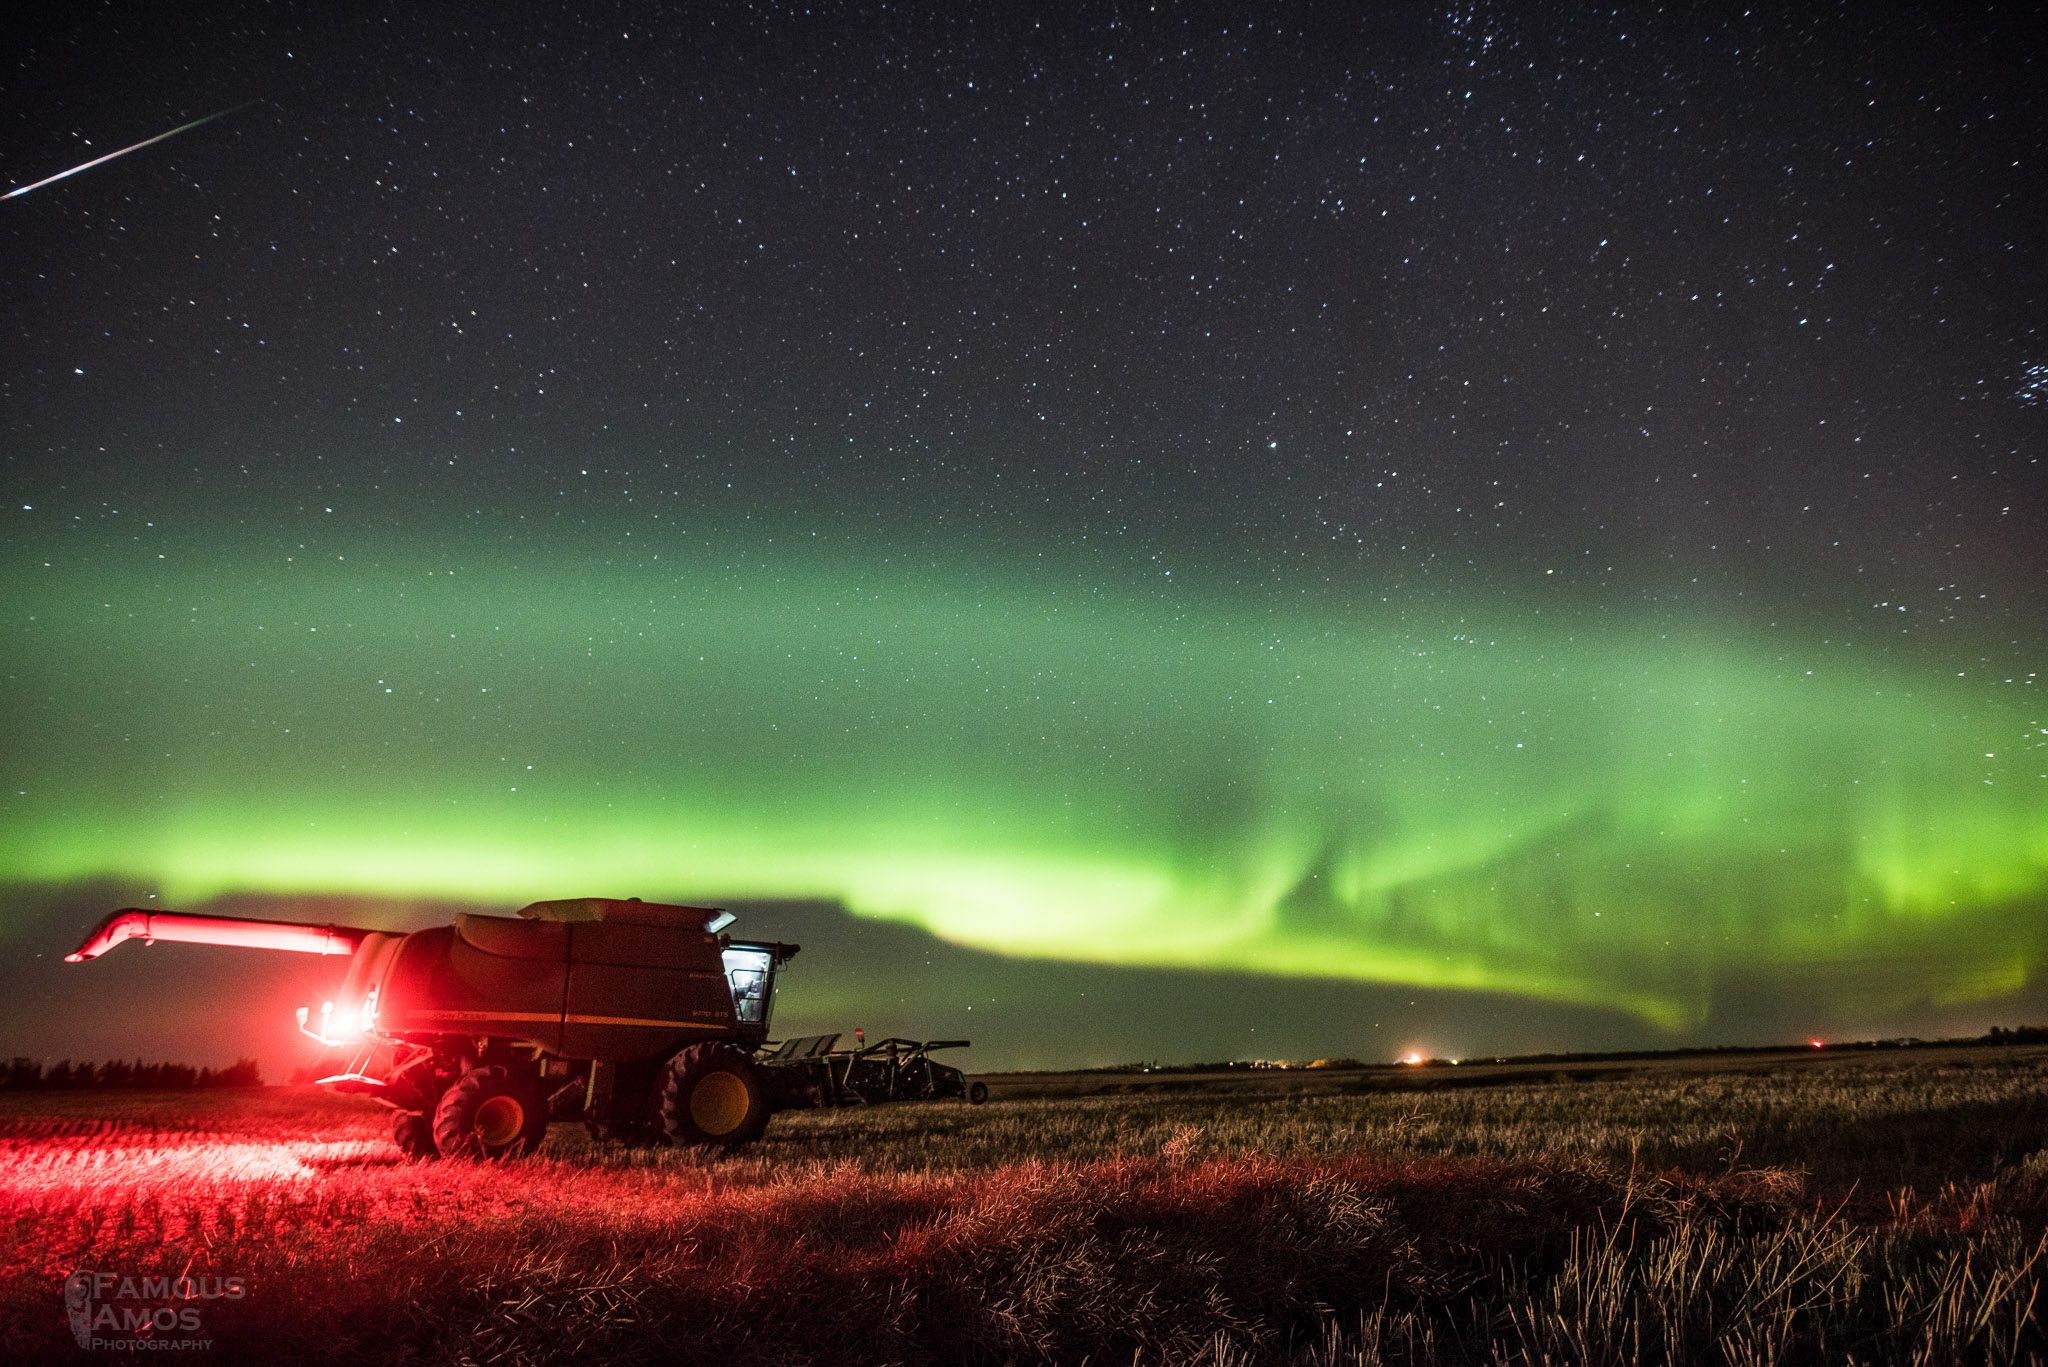 John Tractor Night Lights : Stunning images of deere machines and northern lights